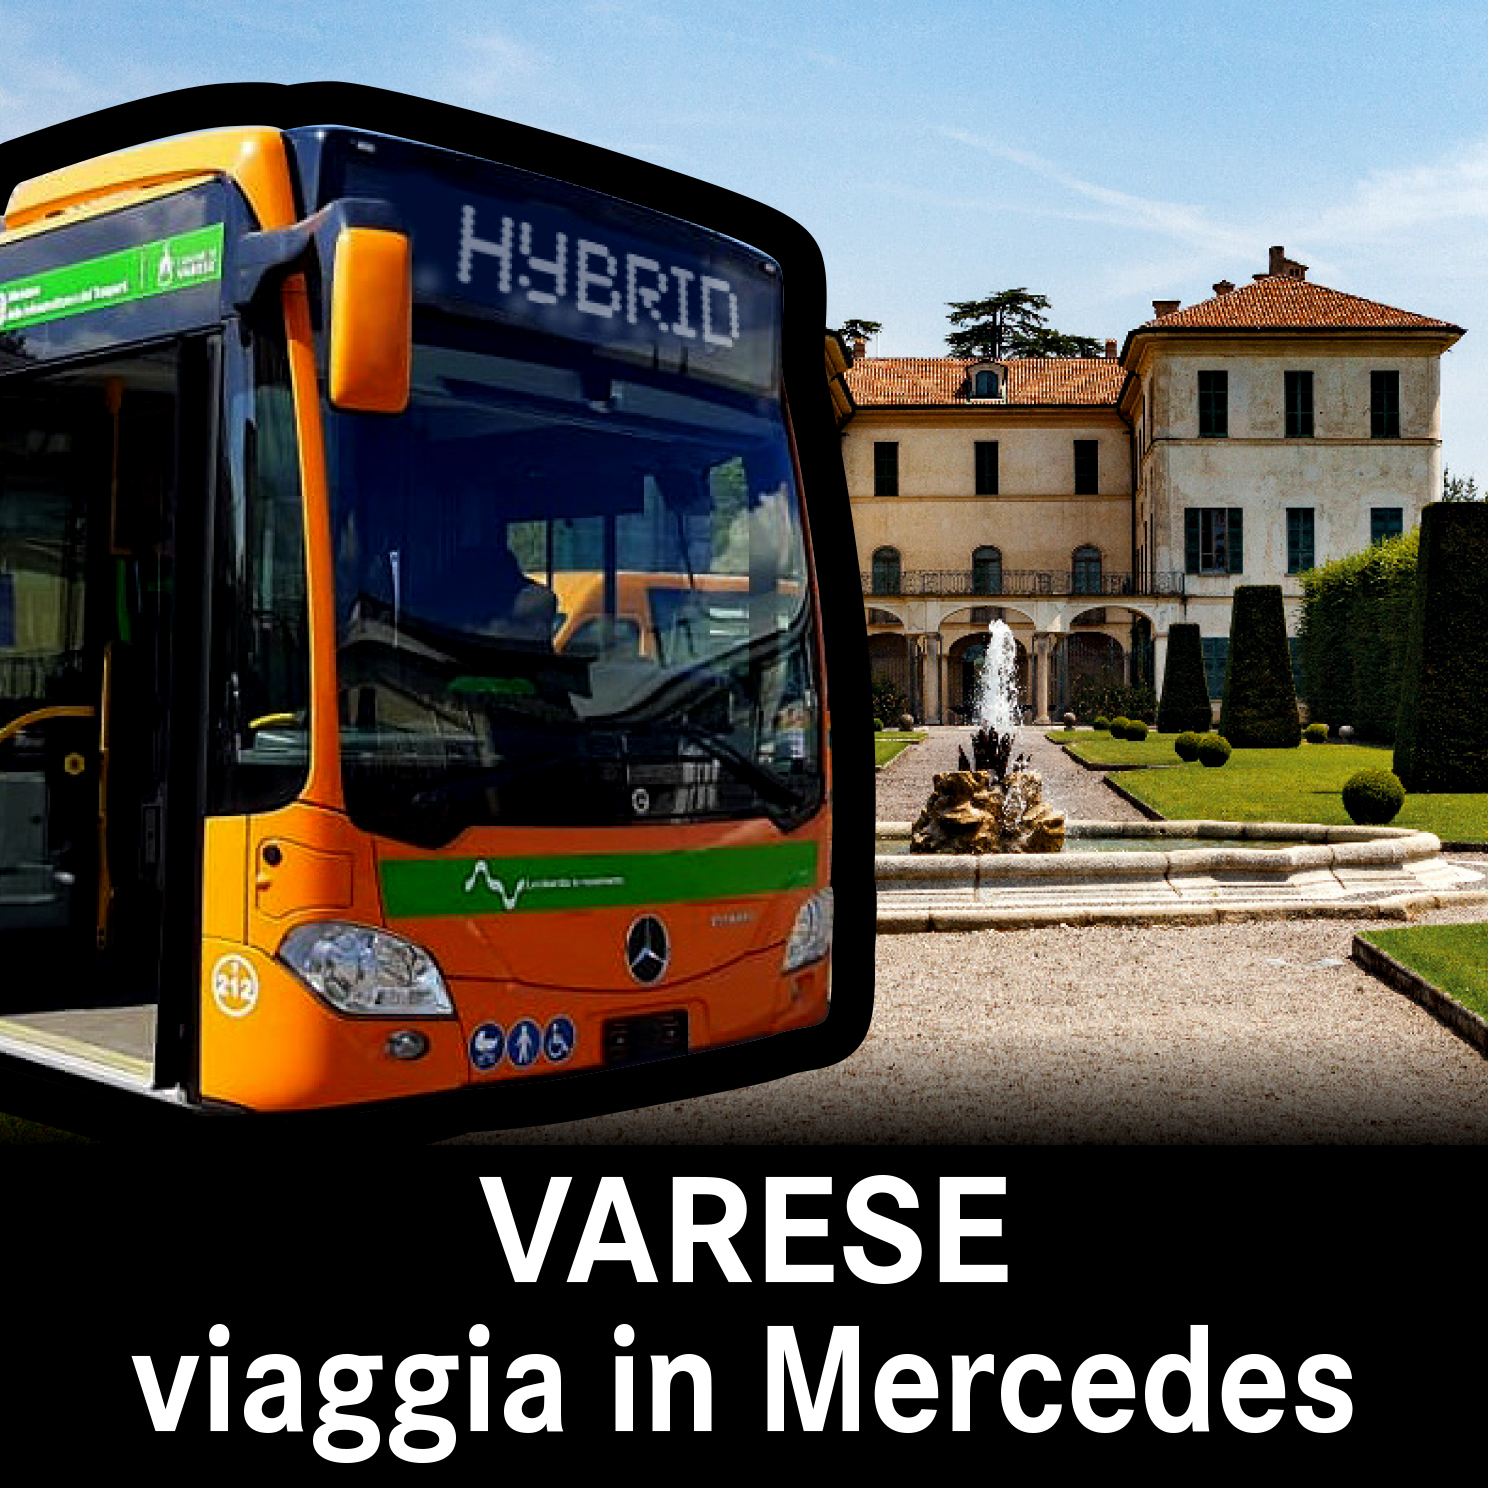 A Varese si viaggia in Mercedes 2021